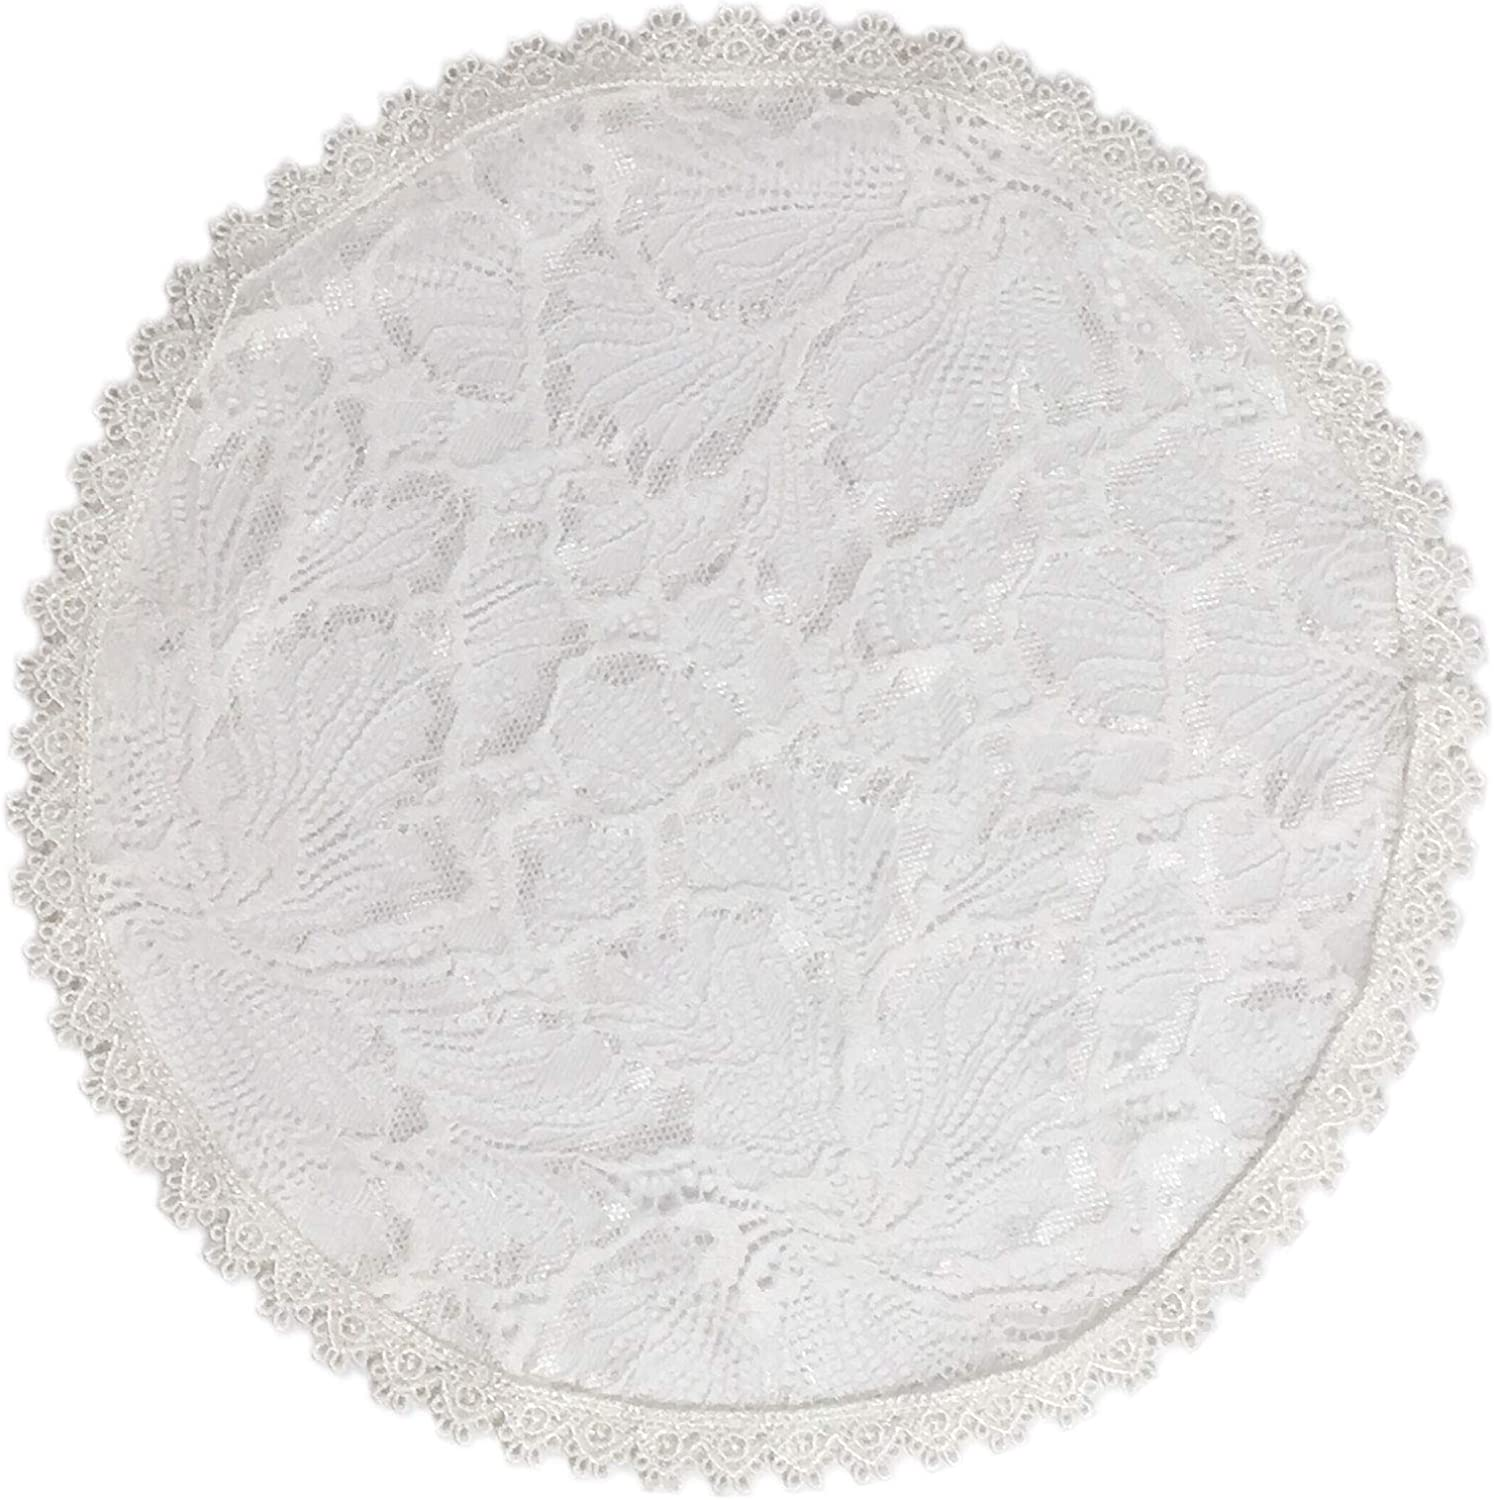 Pamor Chapel Cap Veil Floral Lace Mantilla Inspired Circle Round Head Covering